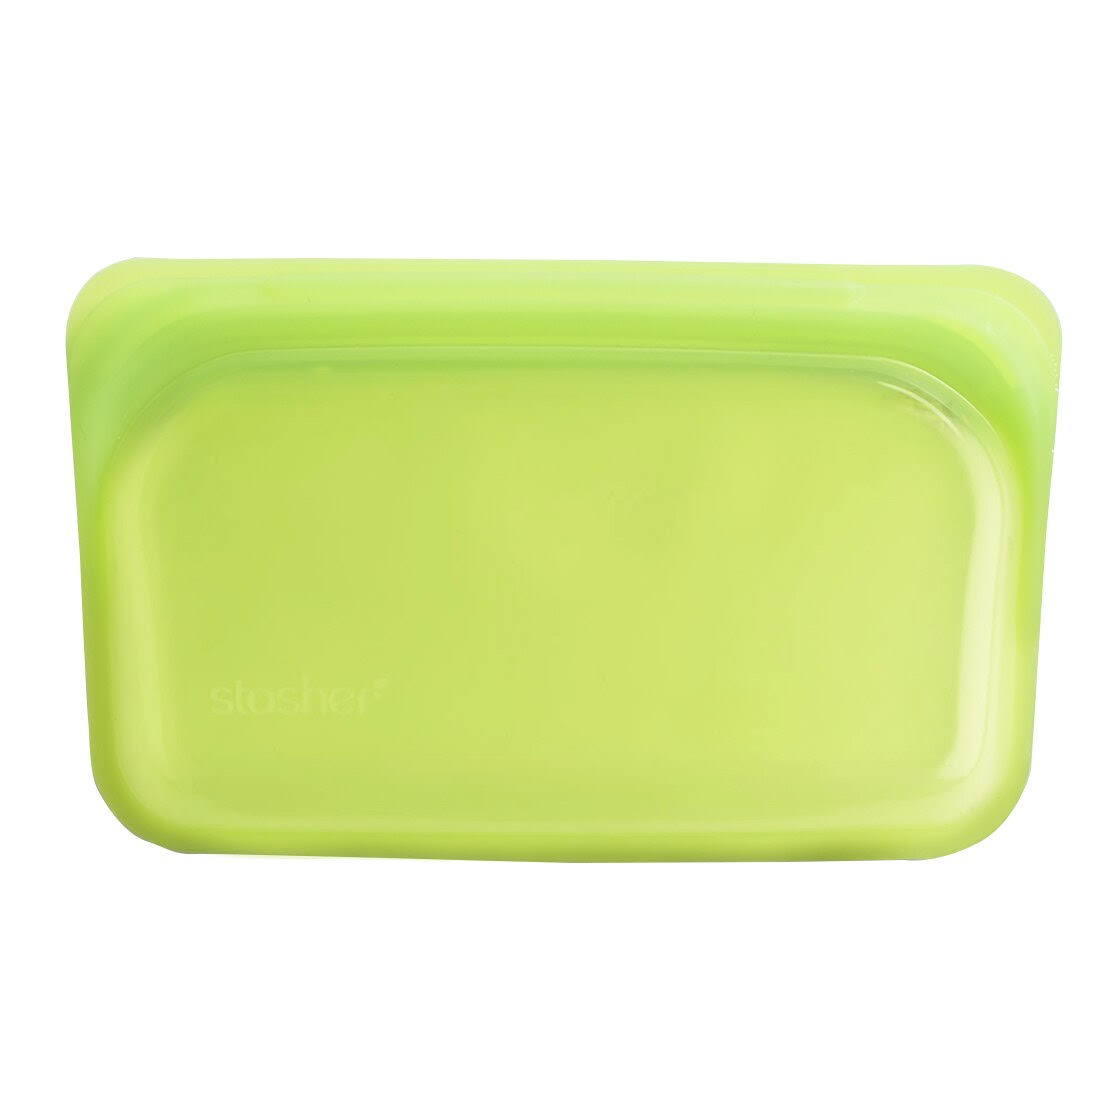 Stasher Snack Storage Bag - Lime